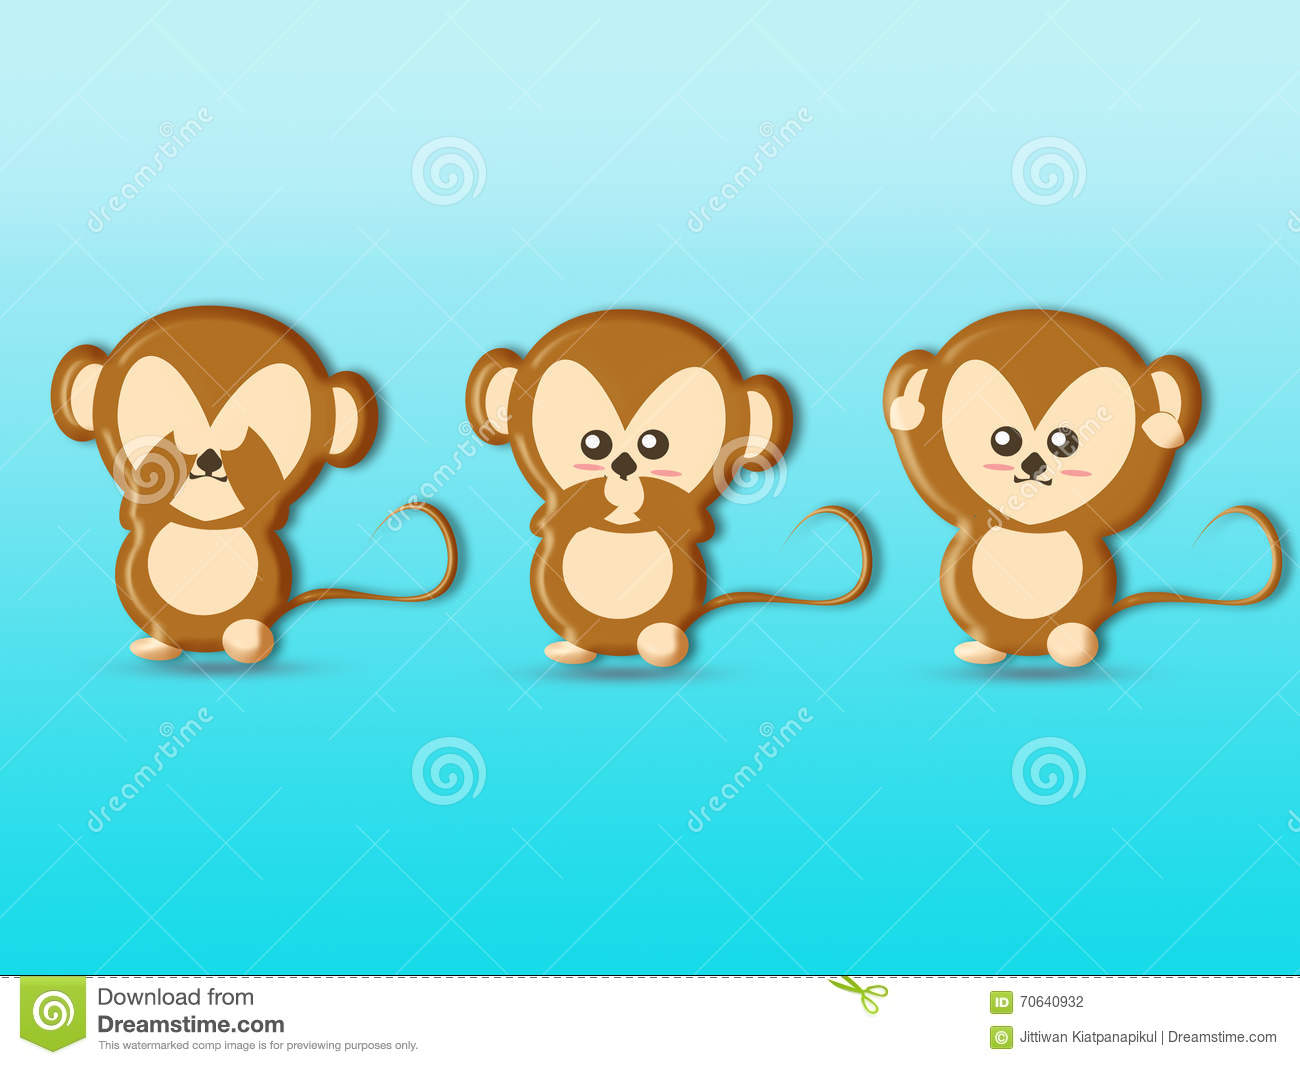 Cute Three Wise Monkeys Cartoons Background Royalty Free